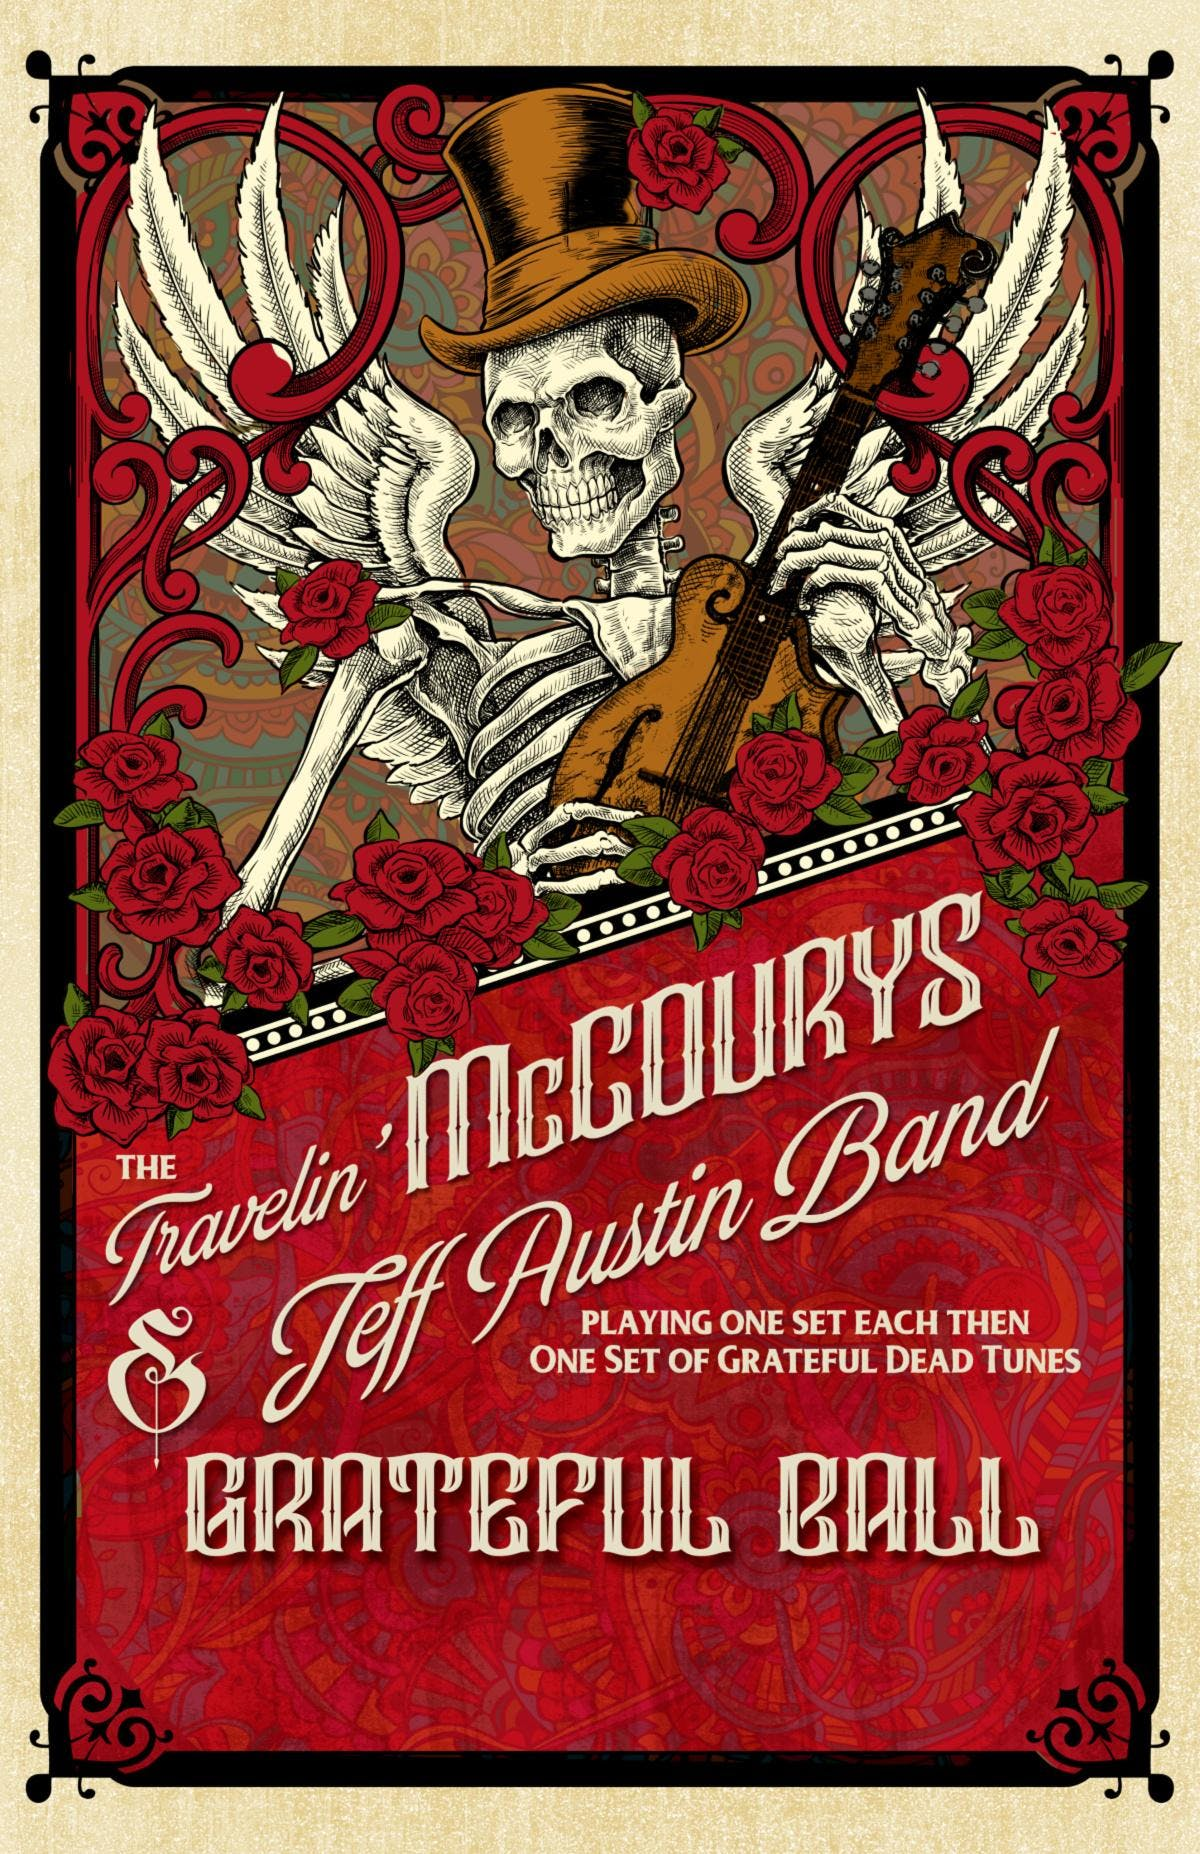 The Grateful Ball feat. The Travelin' McCoury